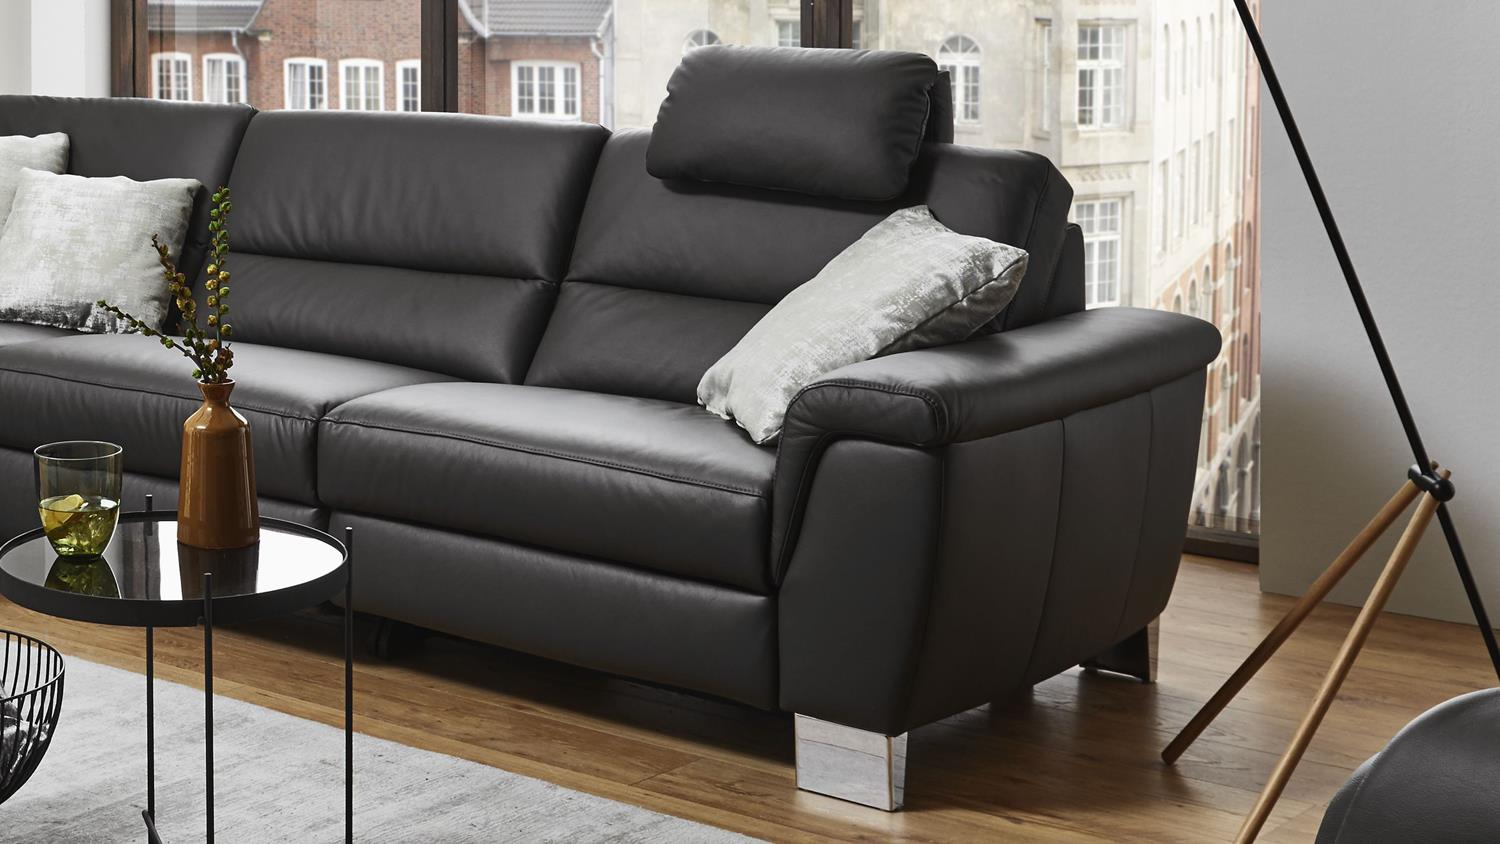 ecksofa sarina bezug in leder schwarz f e metall inkl nosagfederung. Black Bedroom Furniture Sets. Home Design Ideas